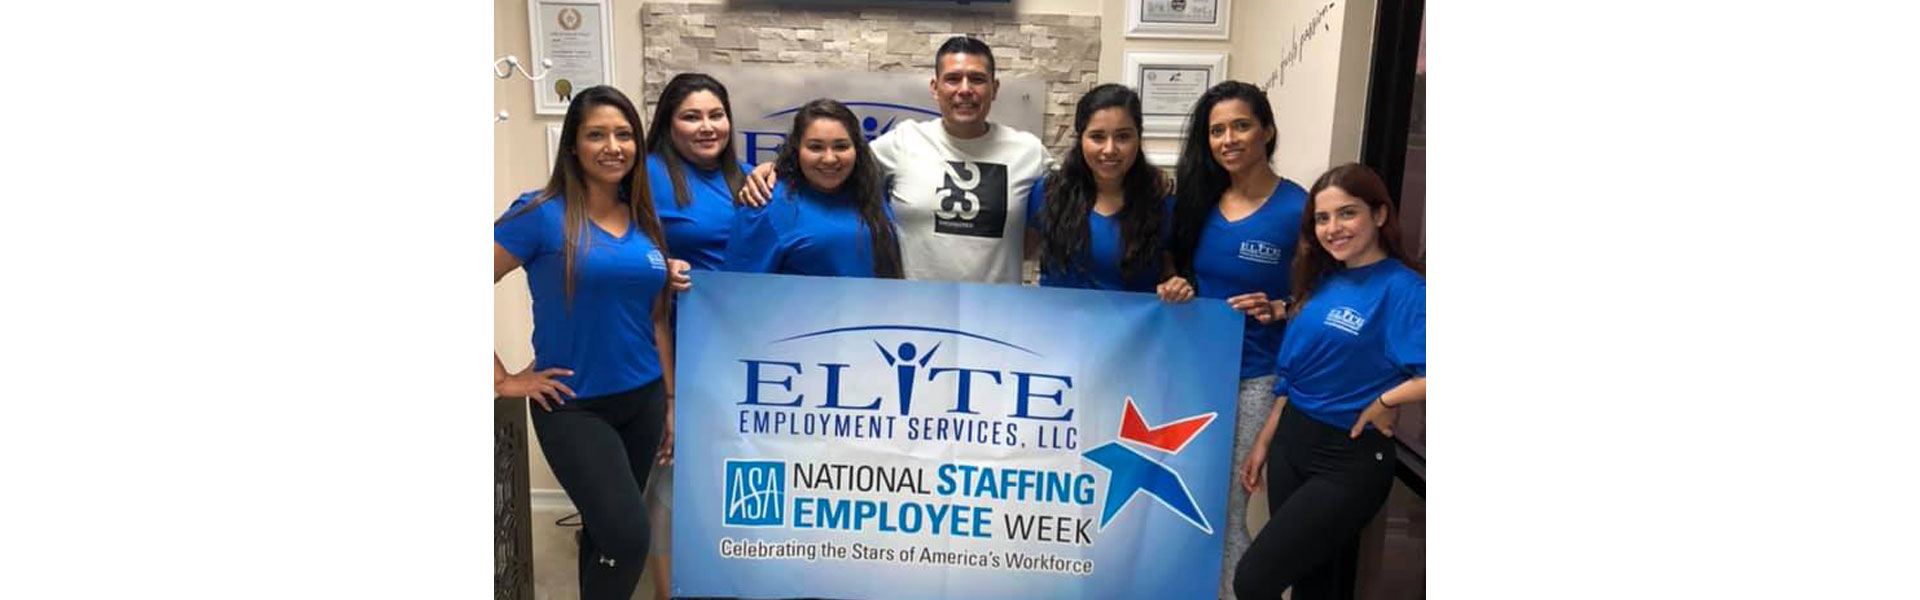 Elite Employment Services celebrated National Staffing Employee Week